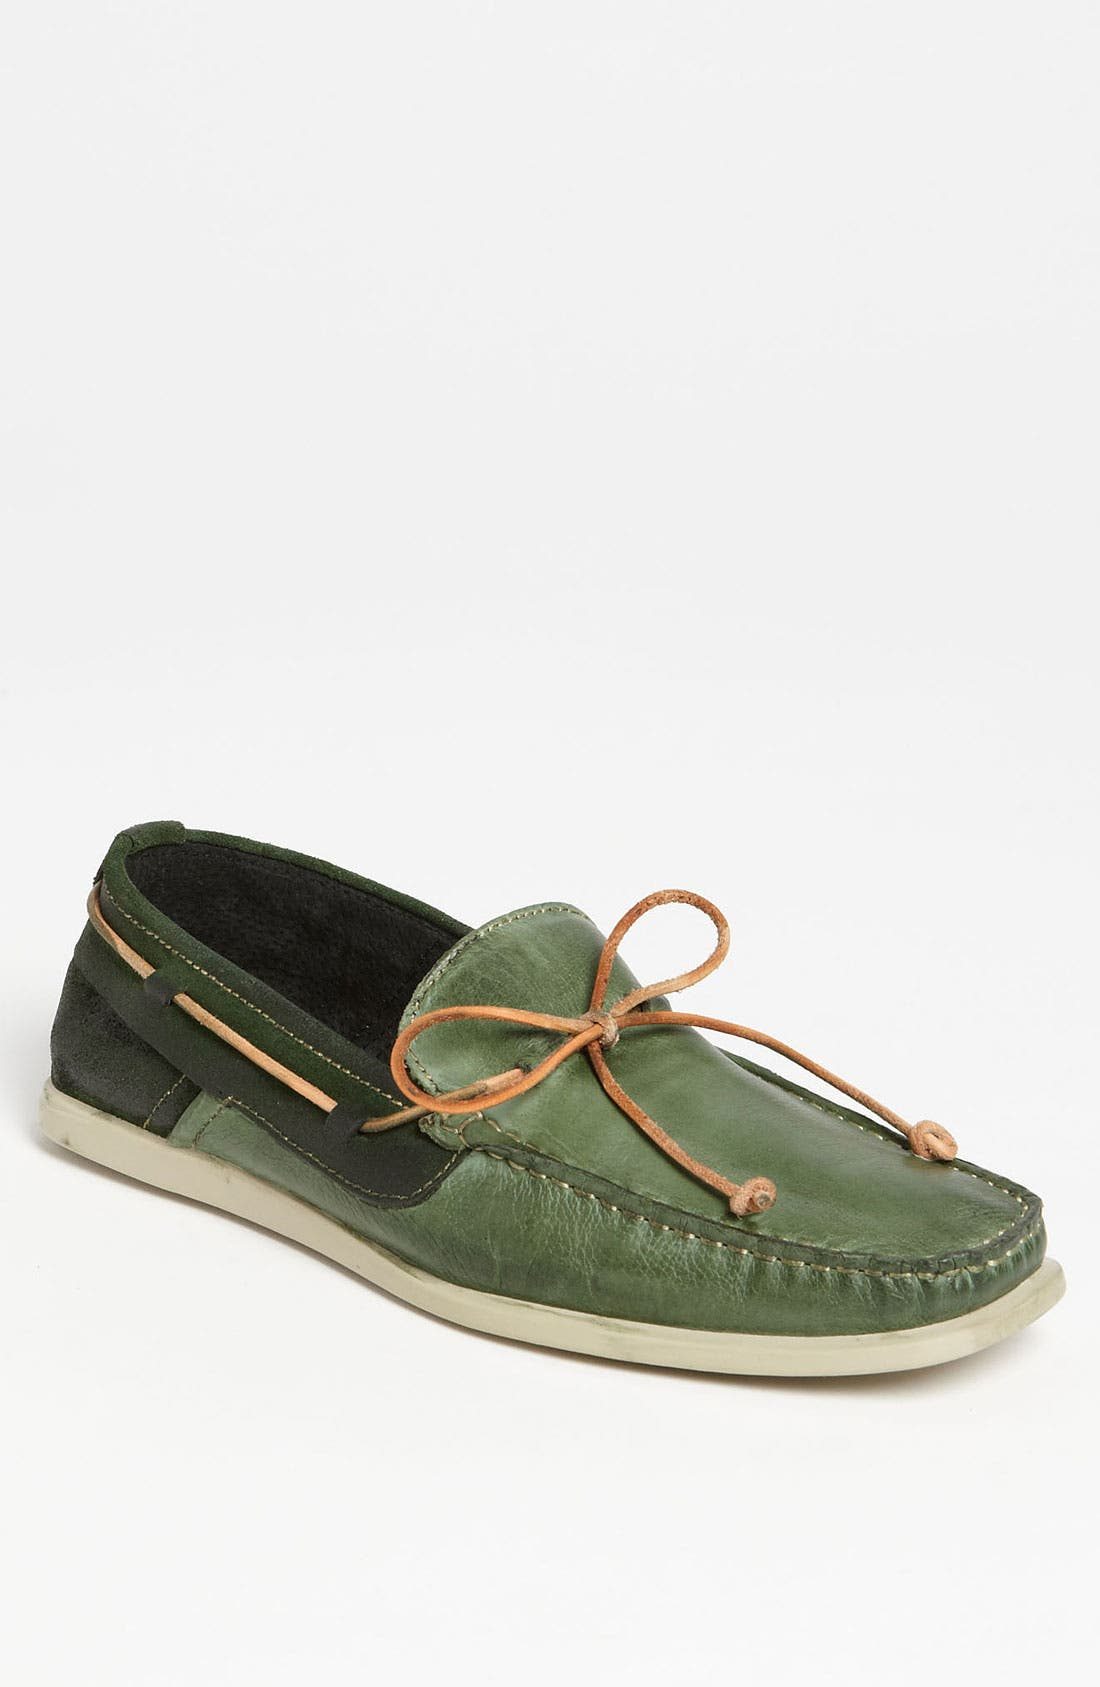 Alternate Image 1 Selected - Kenneth Cole New York 'Sail' Boat Shoe